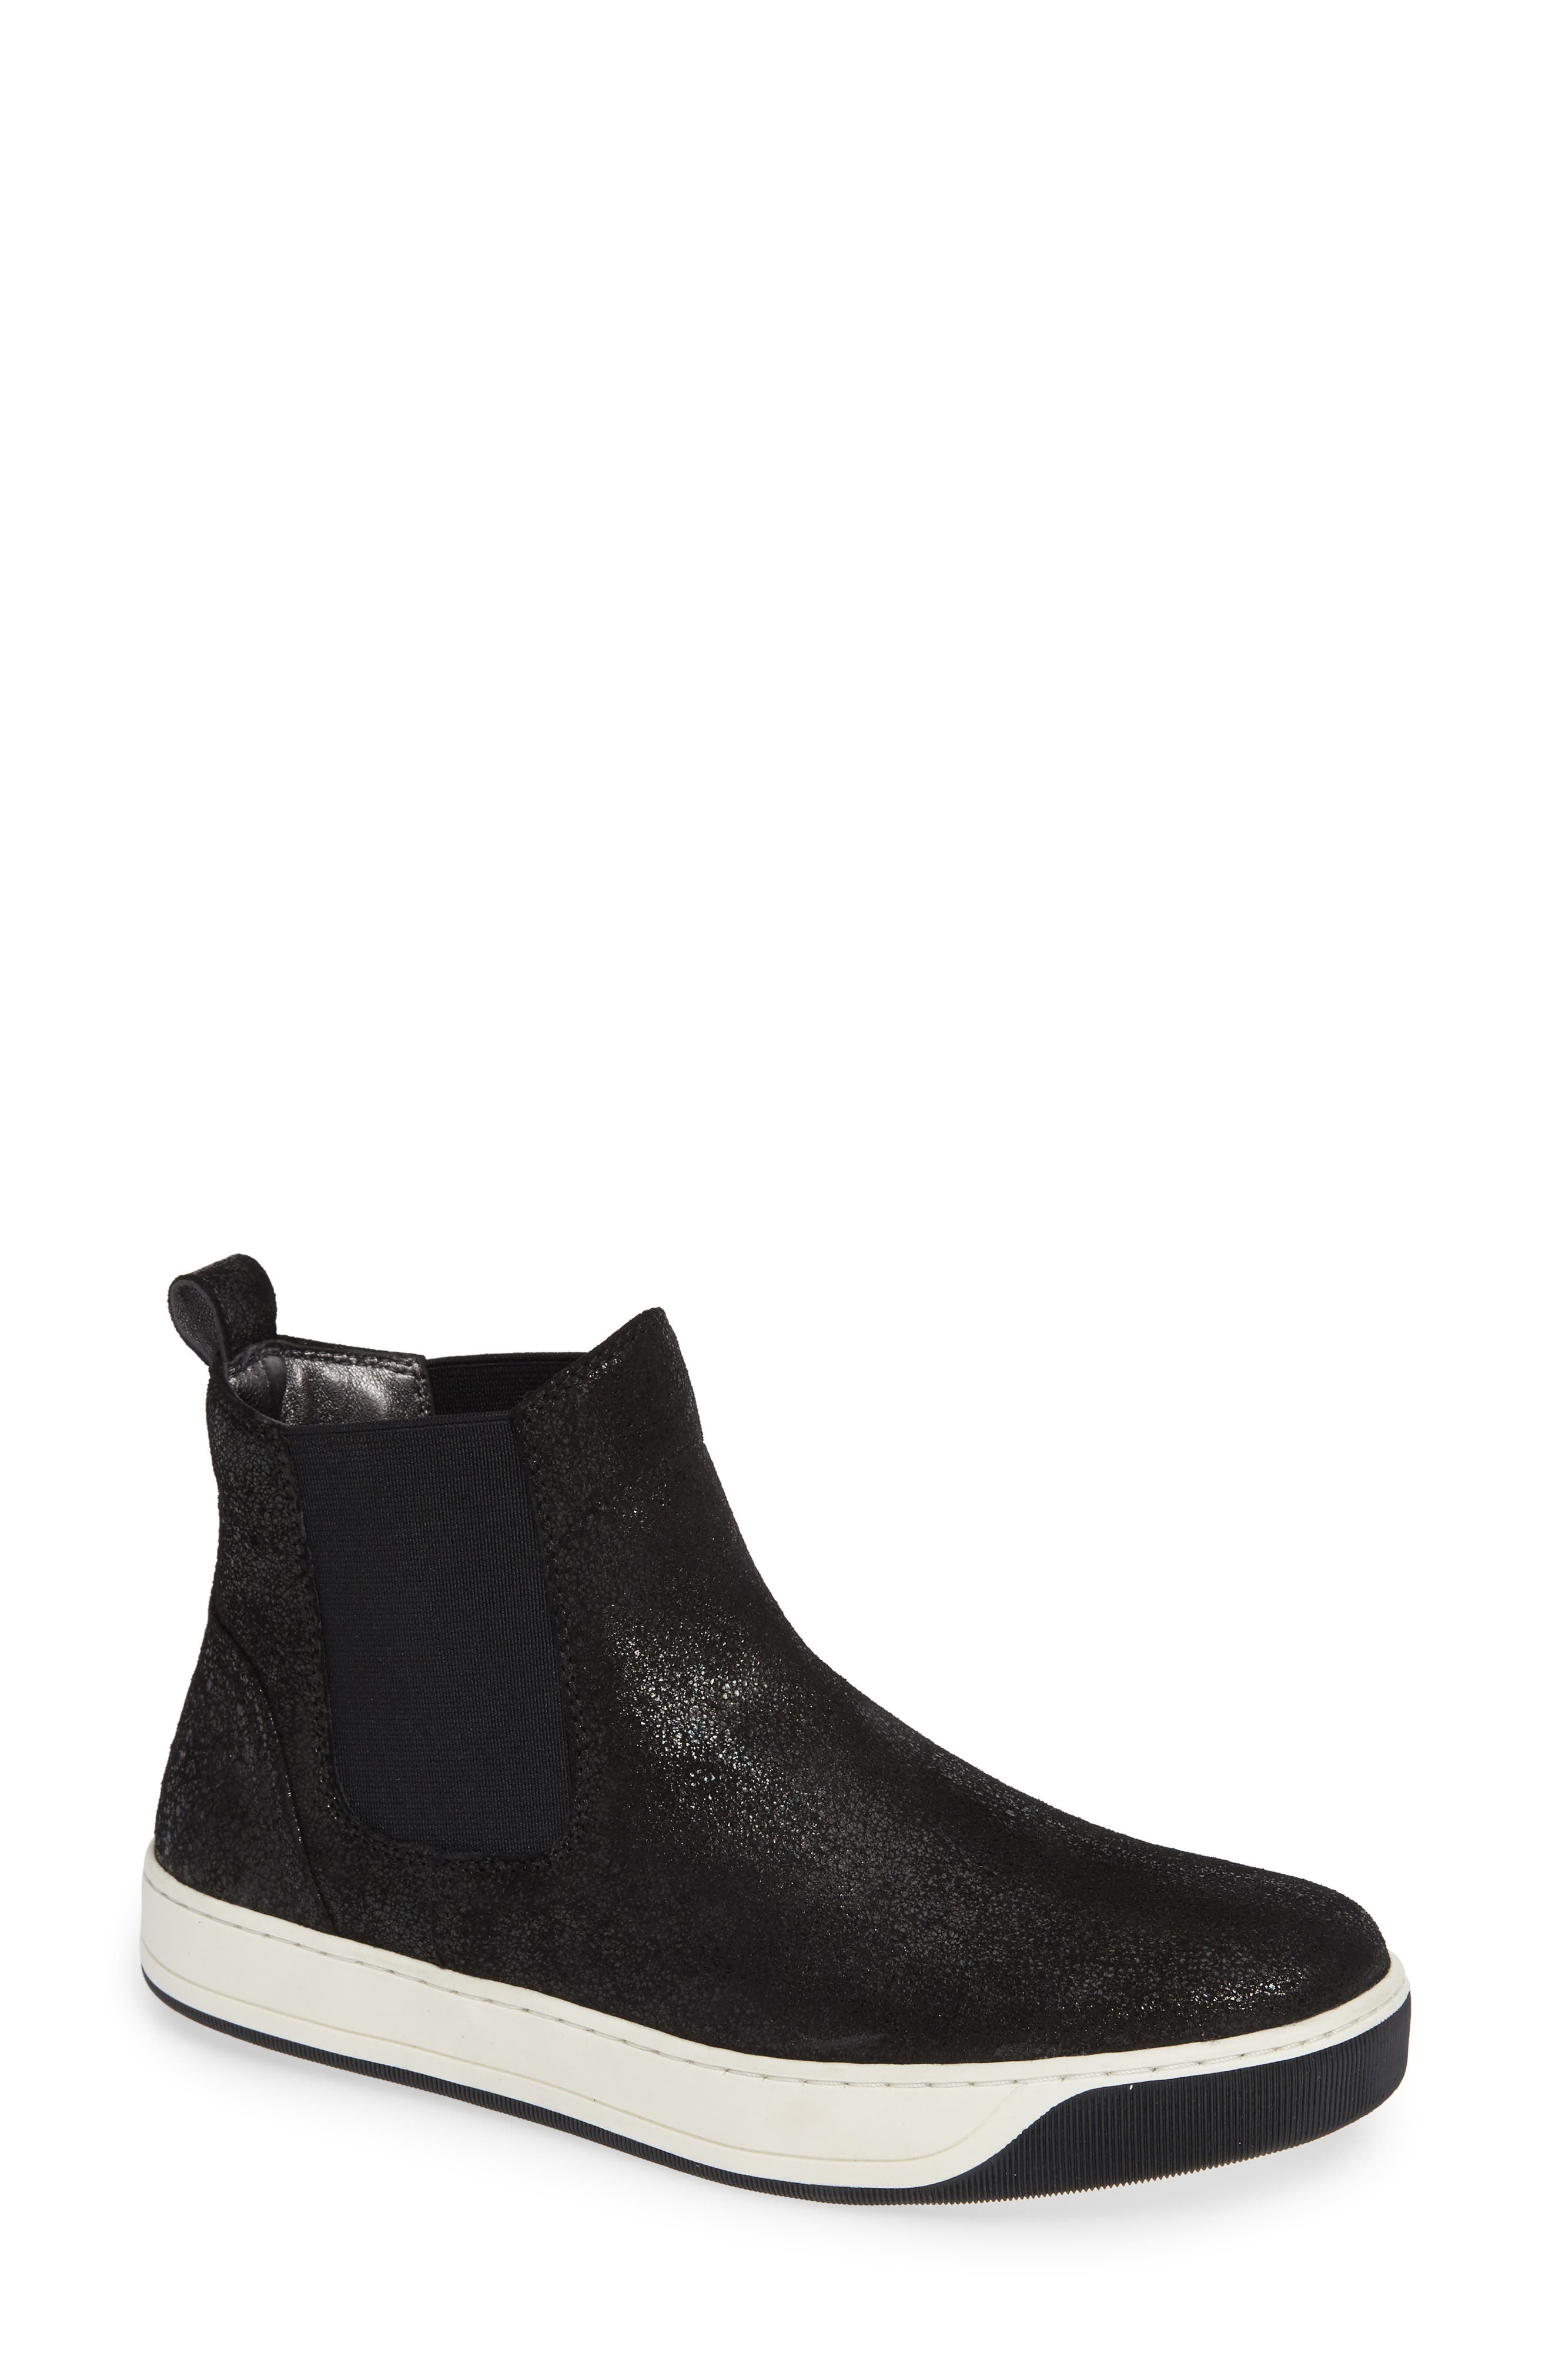 Erica High Top Sneaker, Main, color, BLACK LEATHER